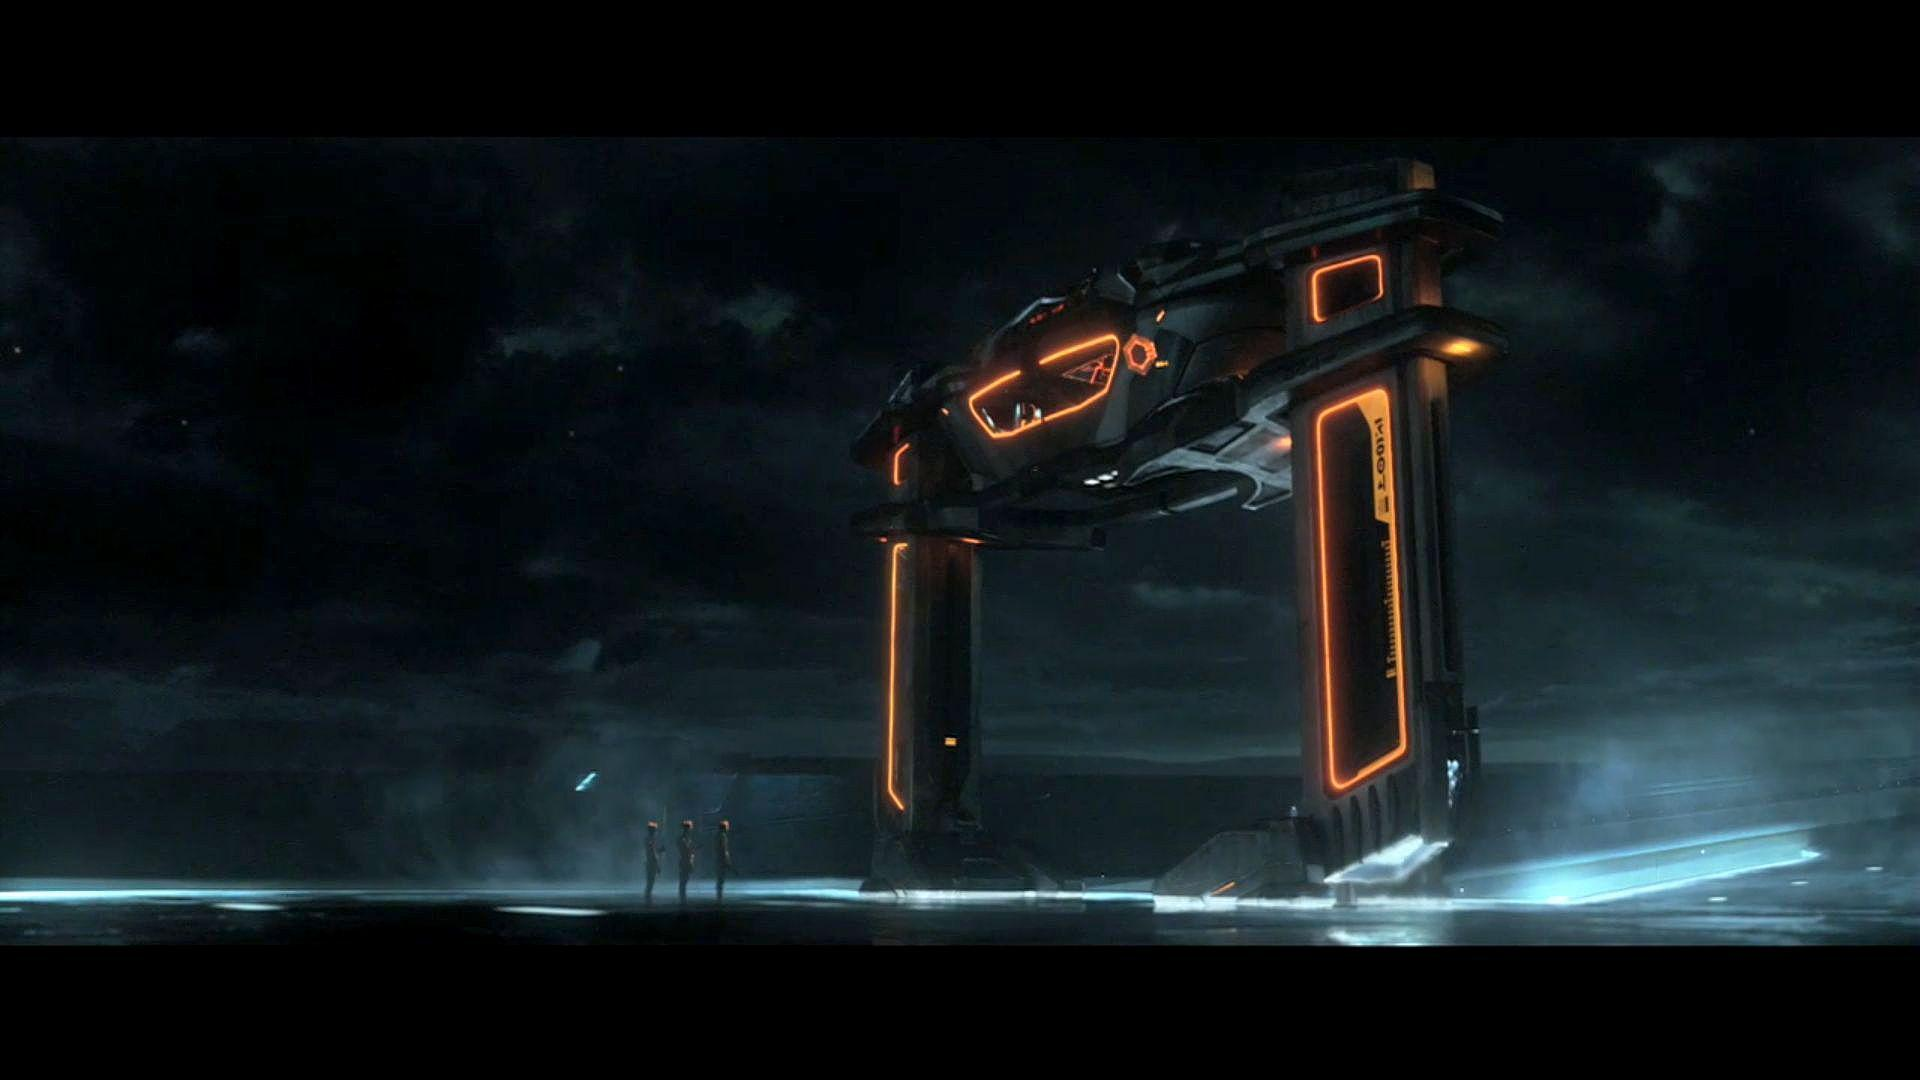 awesome tronlegacy wallpapers - photo #22